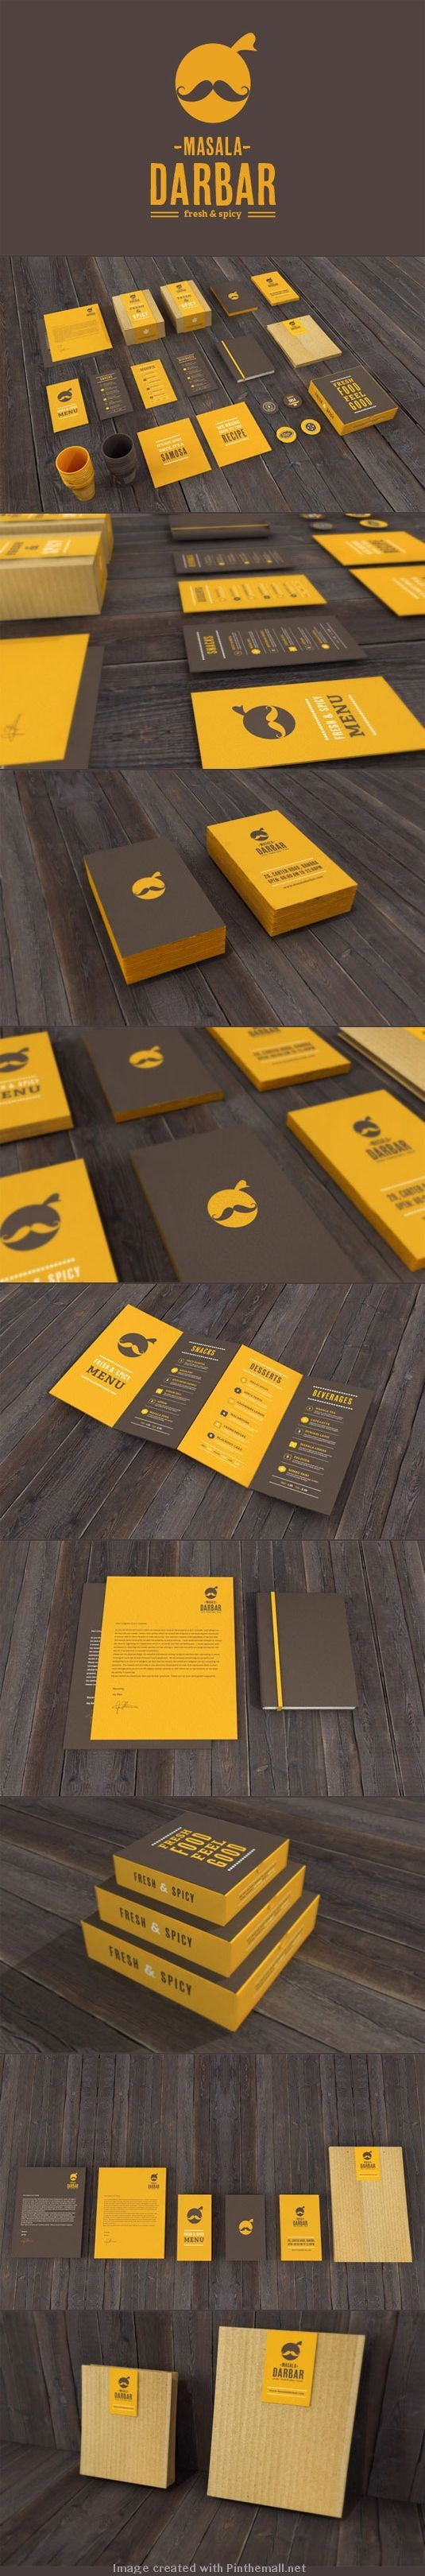 This cool branding for a new Indian restaurant steps beyond the usual foodie cliches to evoke a fresh, modern feel..